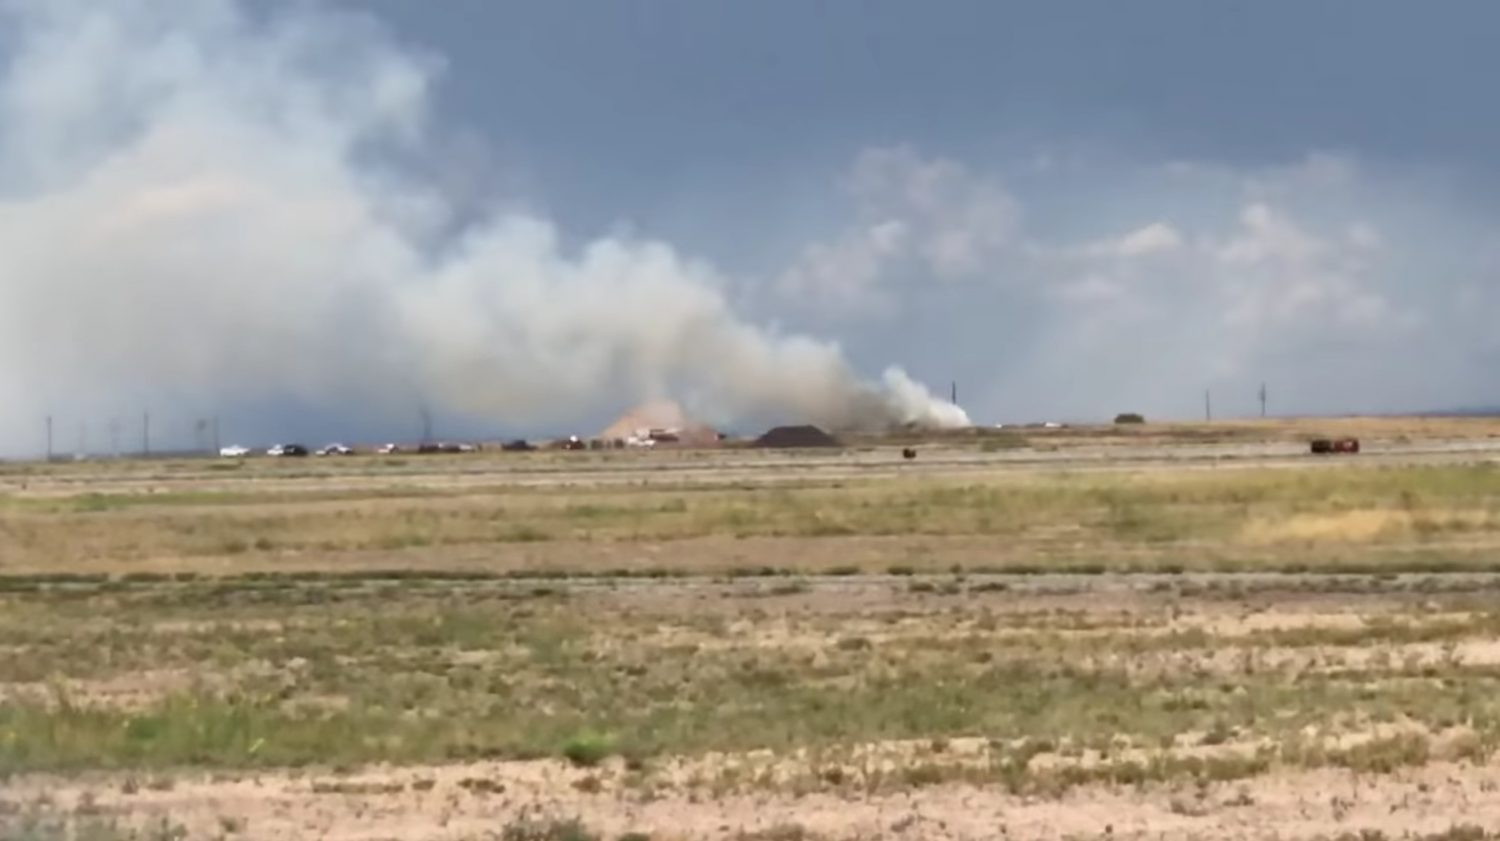 Smoke from an explosion is seen in Roswell, New Mexico, U.S., June 5, 2019 in this picture obtained from social media. Roswell Today/via REUTERS